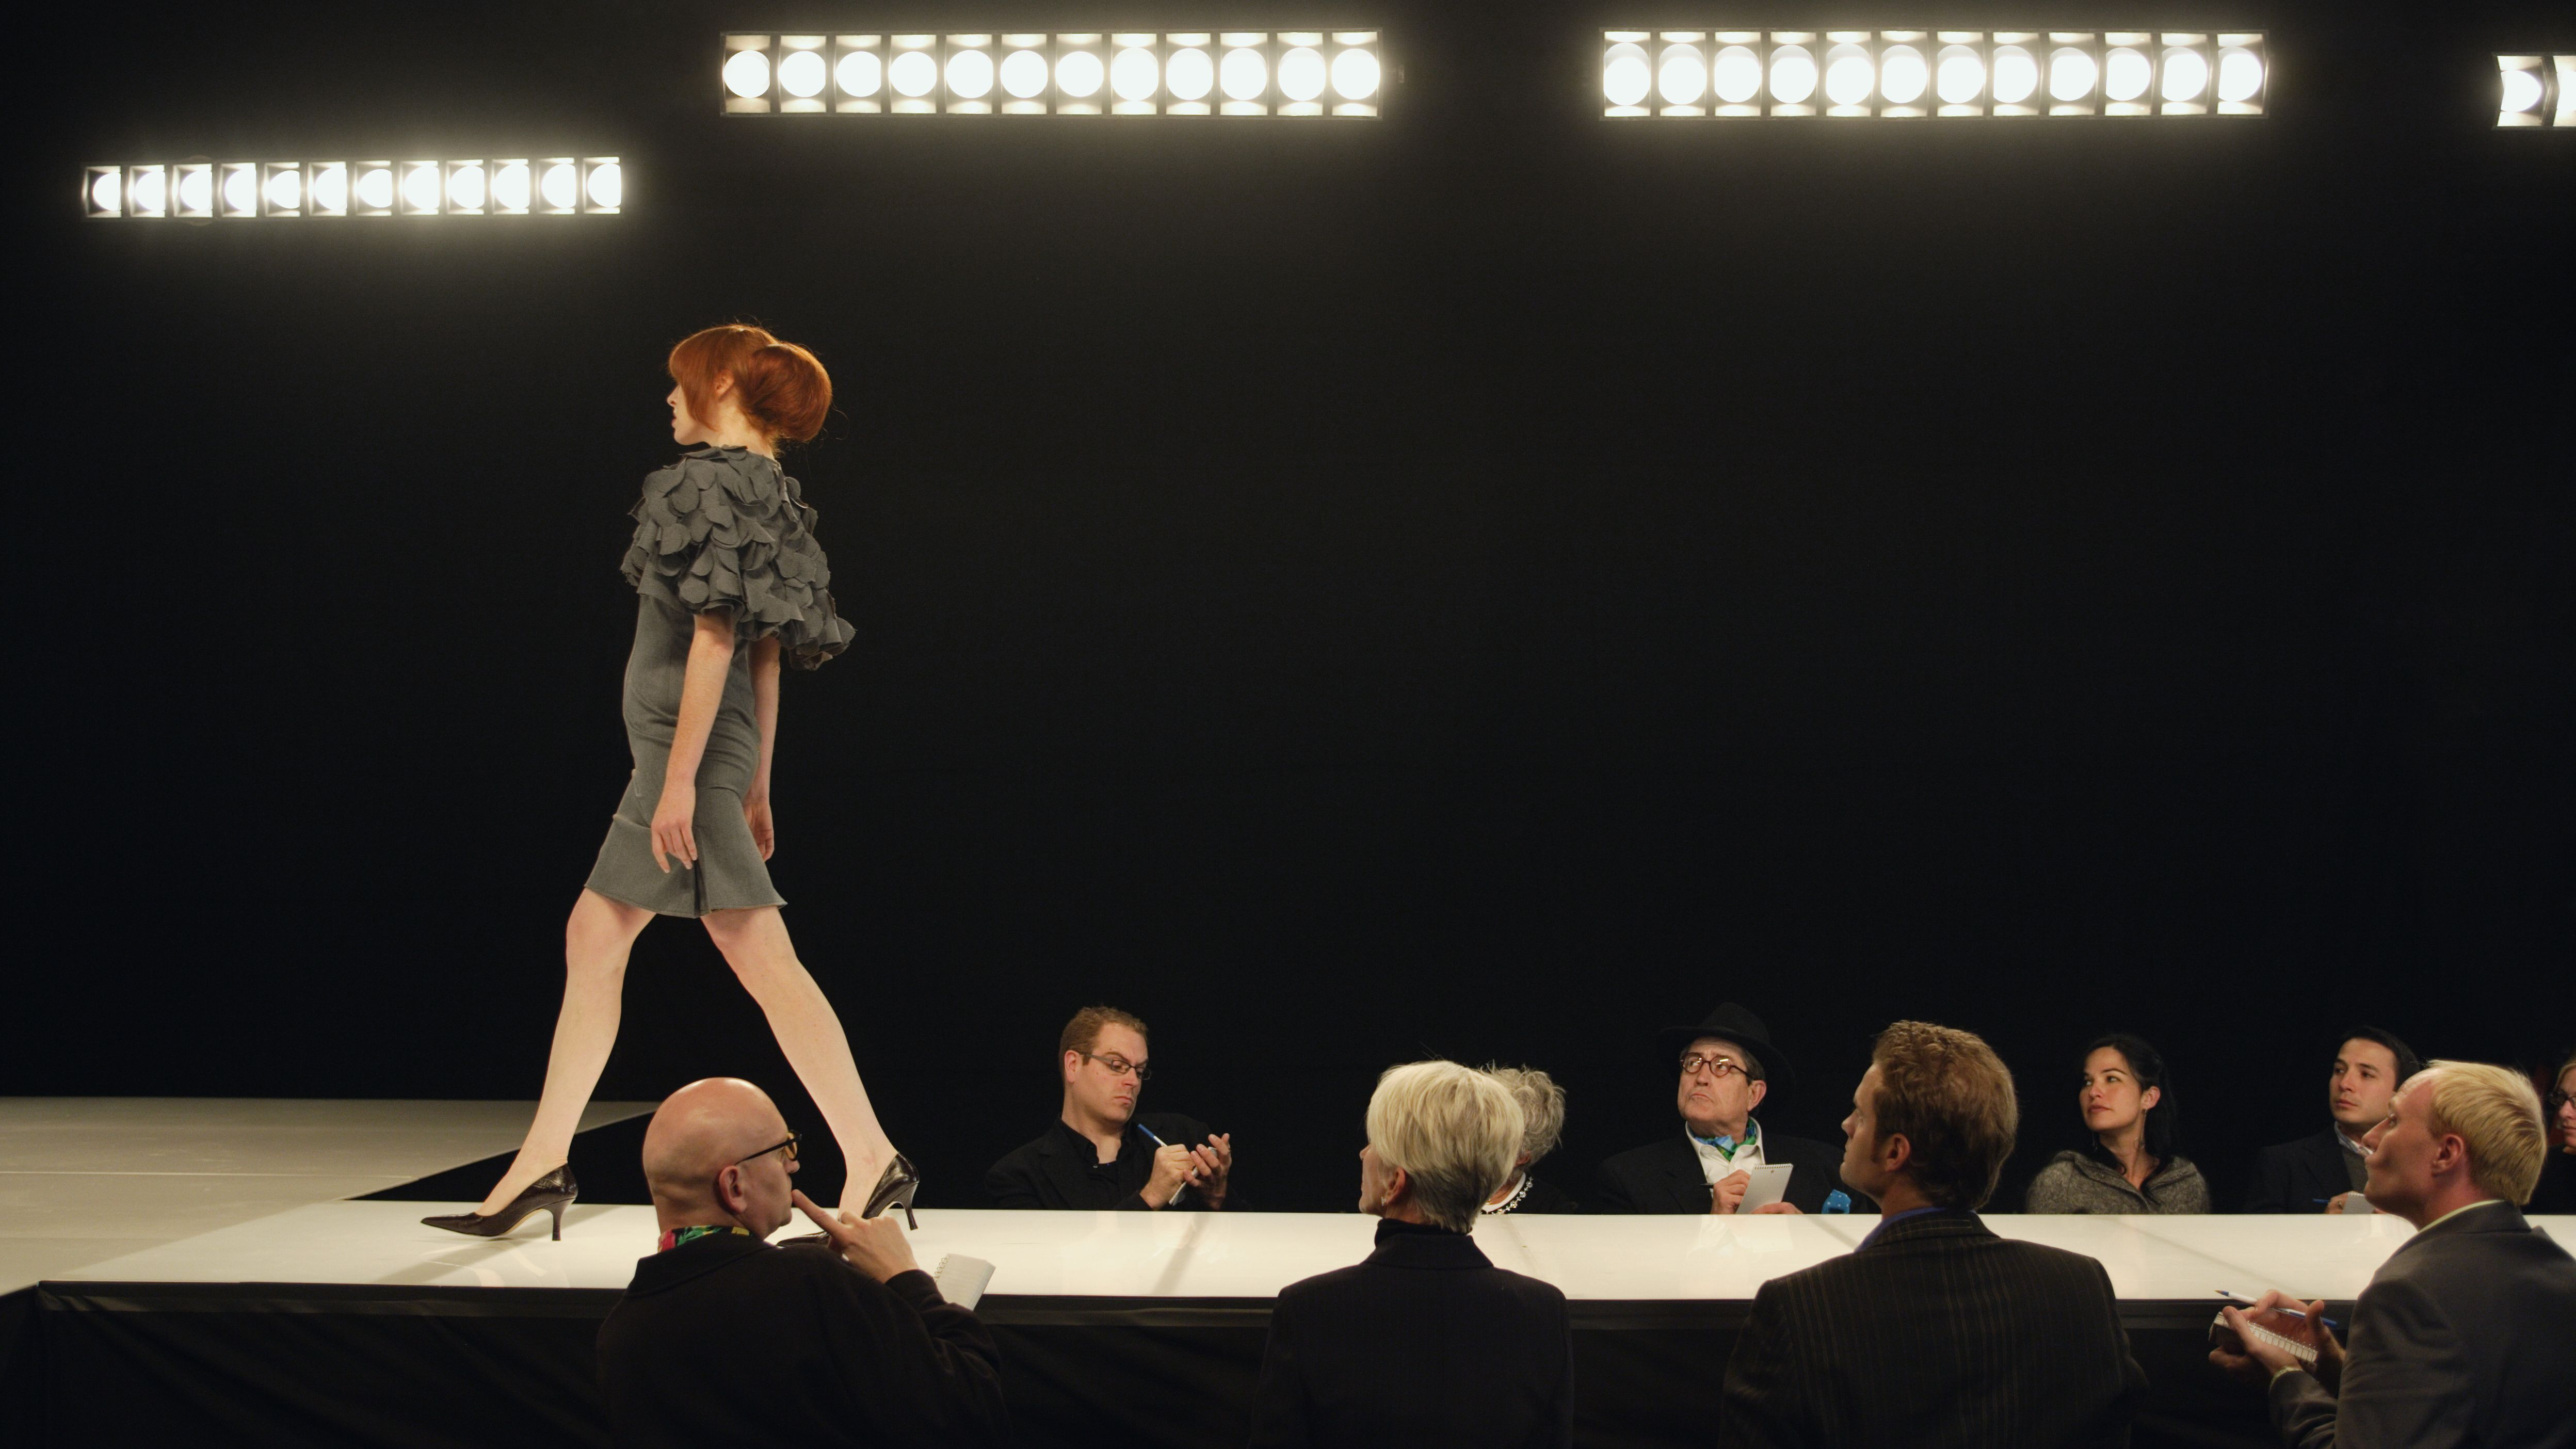 Are Modeling Conventions Worth the Expense?